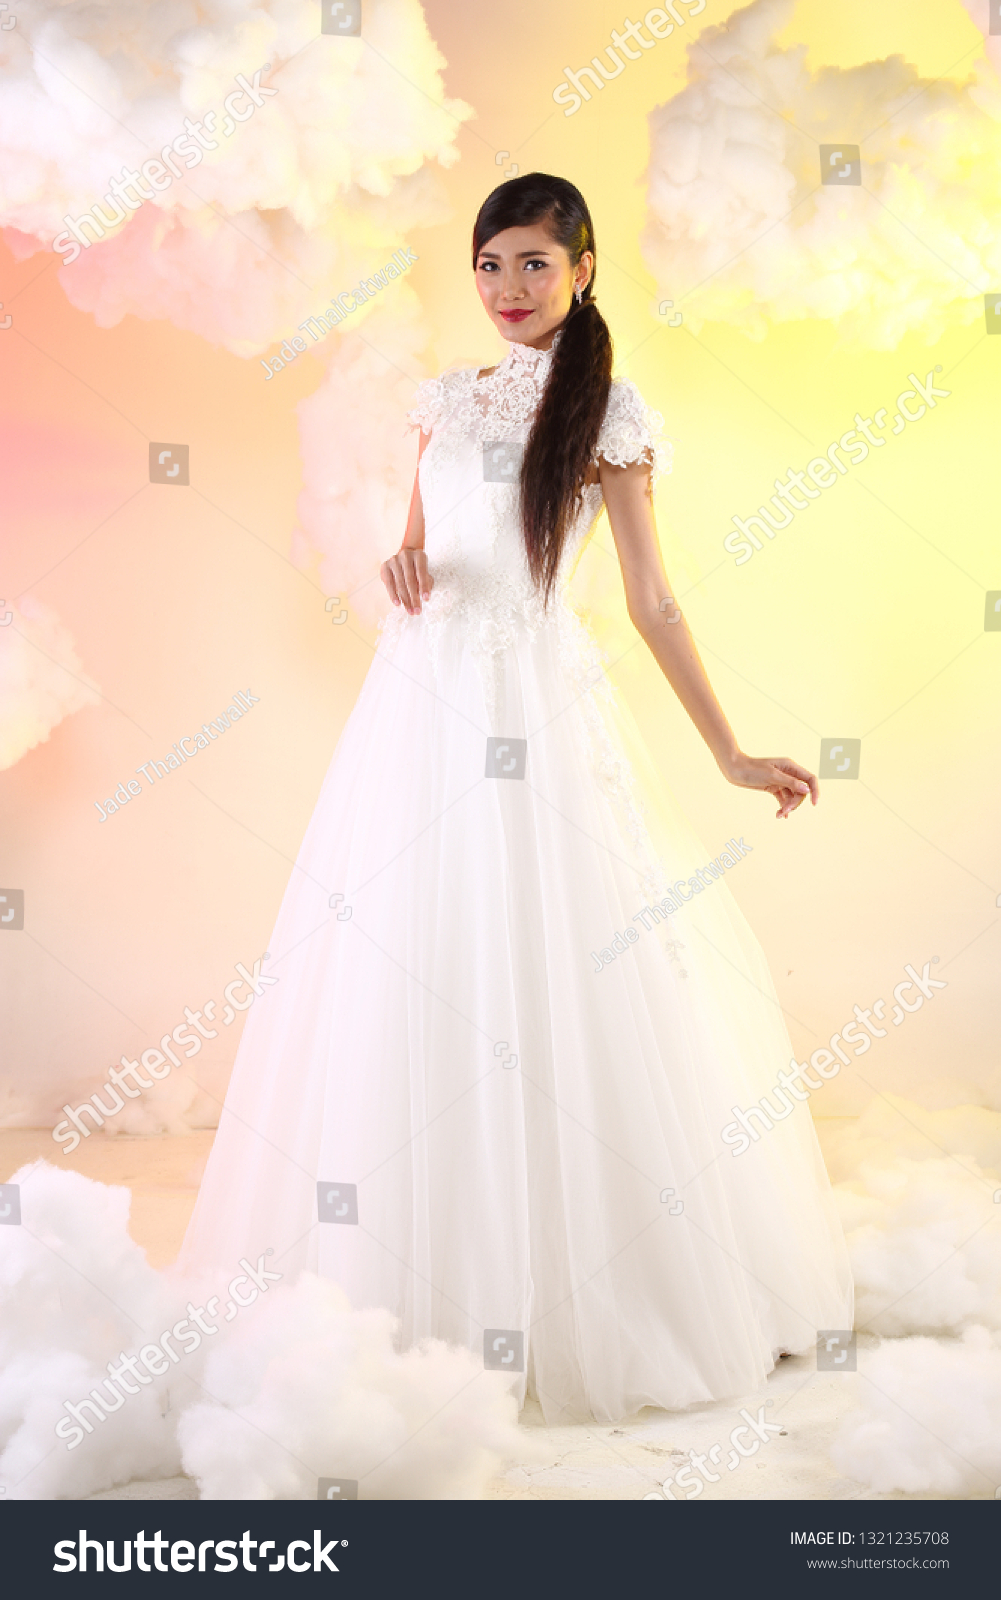 https://image.shutterstock.com/z/stock-photo-lovely-asian-beautiful-woman-bride-in-white-wedding-gown-dress-with-lace-veil-black-hair-studio-1321235708.jpg